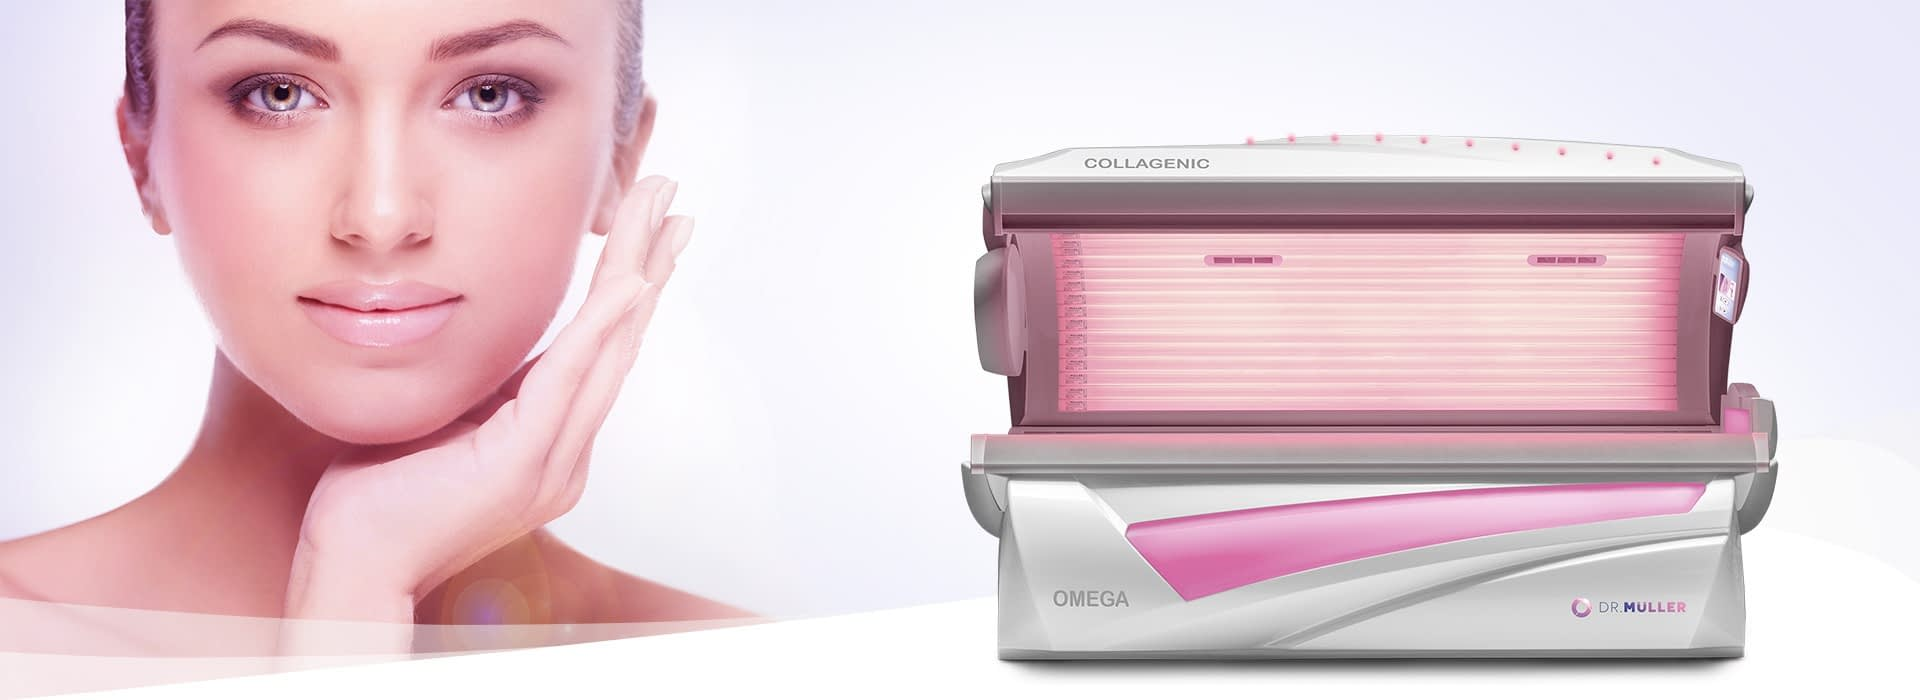 Dr. Muller Collagenic Machines Omega